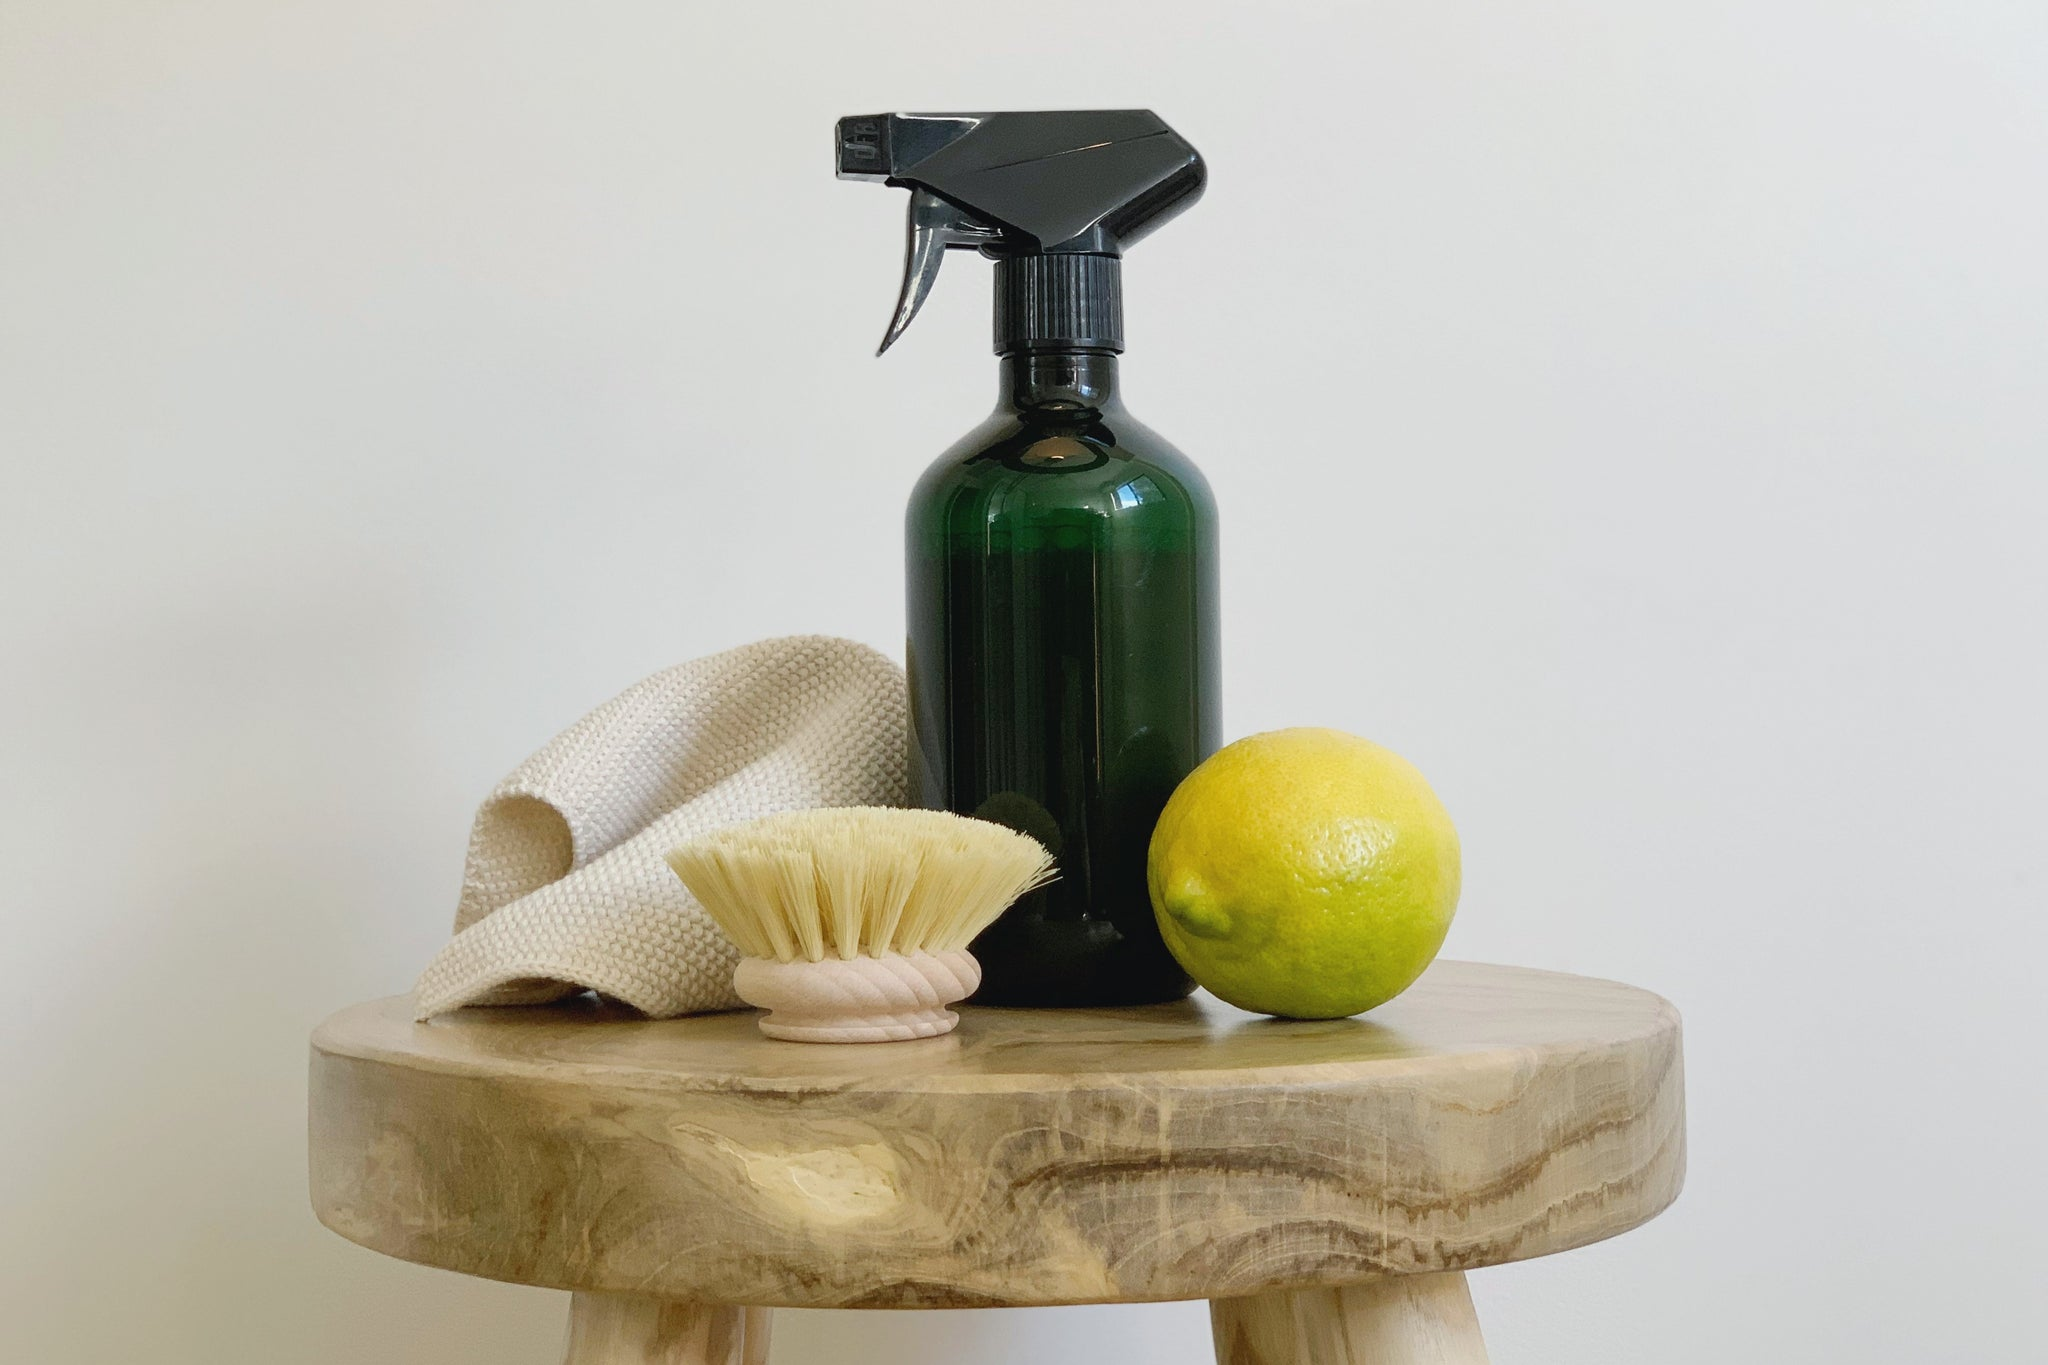 Homemade all-purpose cleaner with lemon juice